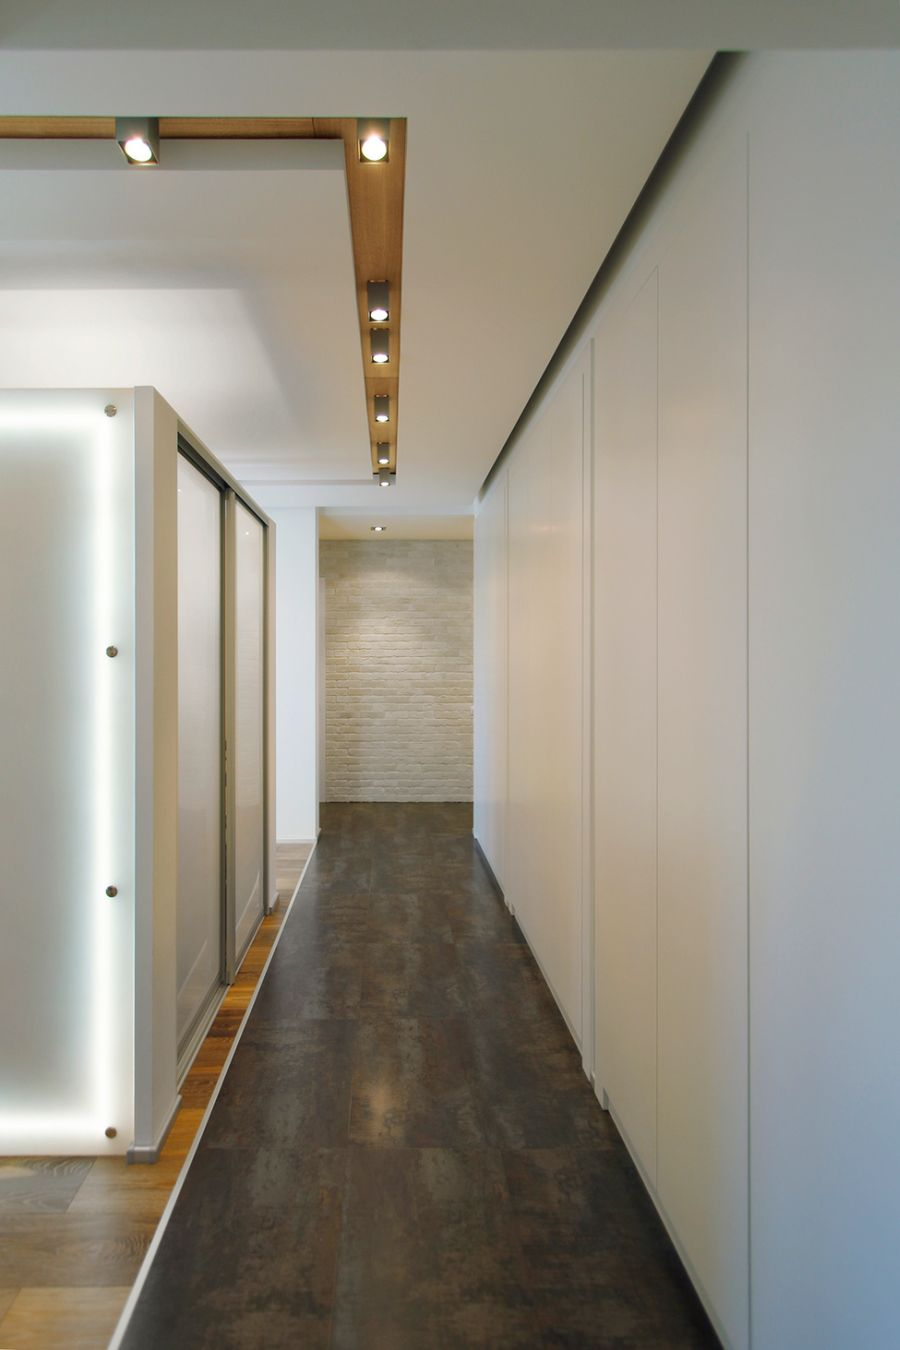 Recessed lighting in the corridor